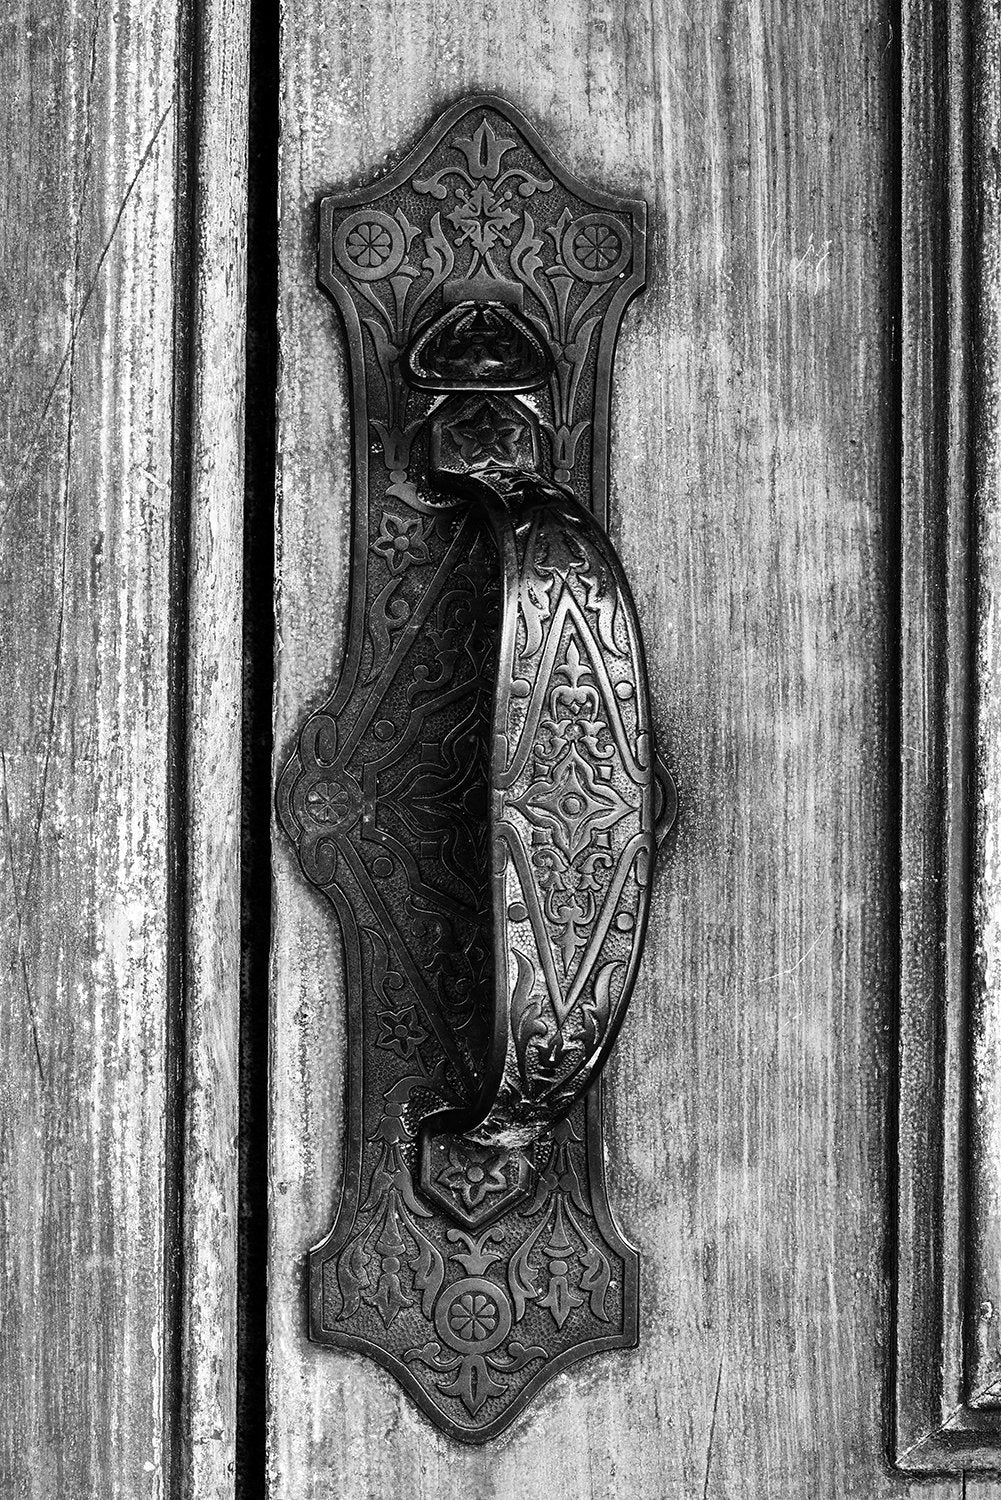 Black and white architectural detail photograph of an ornately detailed old door pull on the door of an 1880s-era library building. Buy a fine art print.